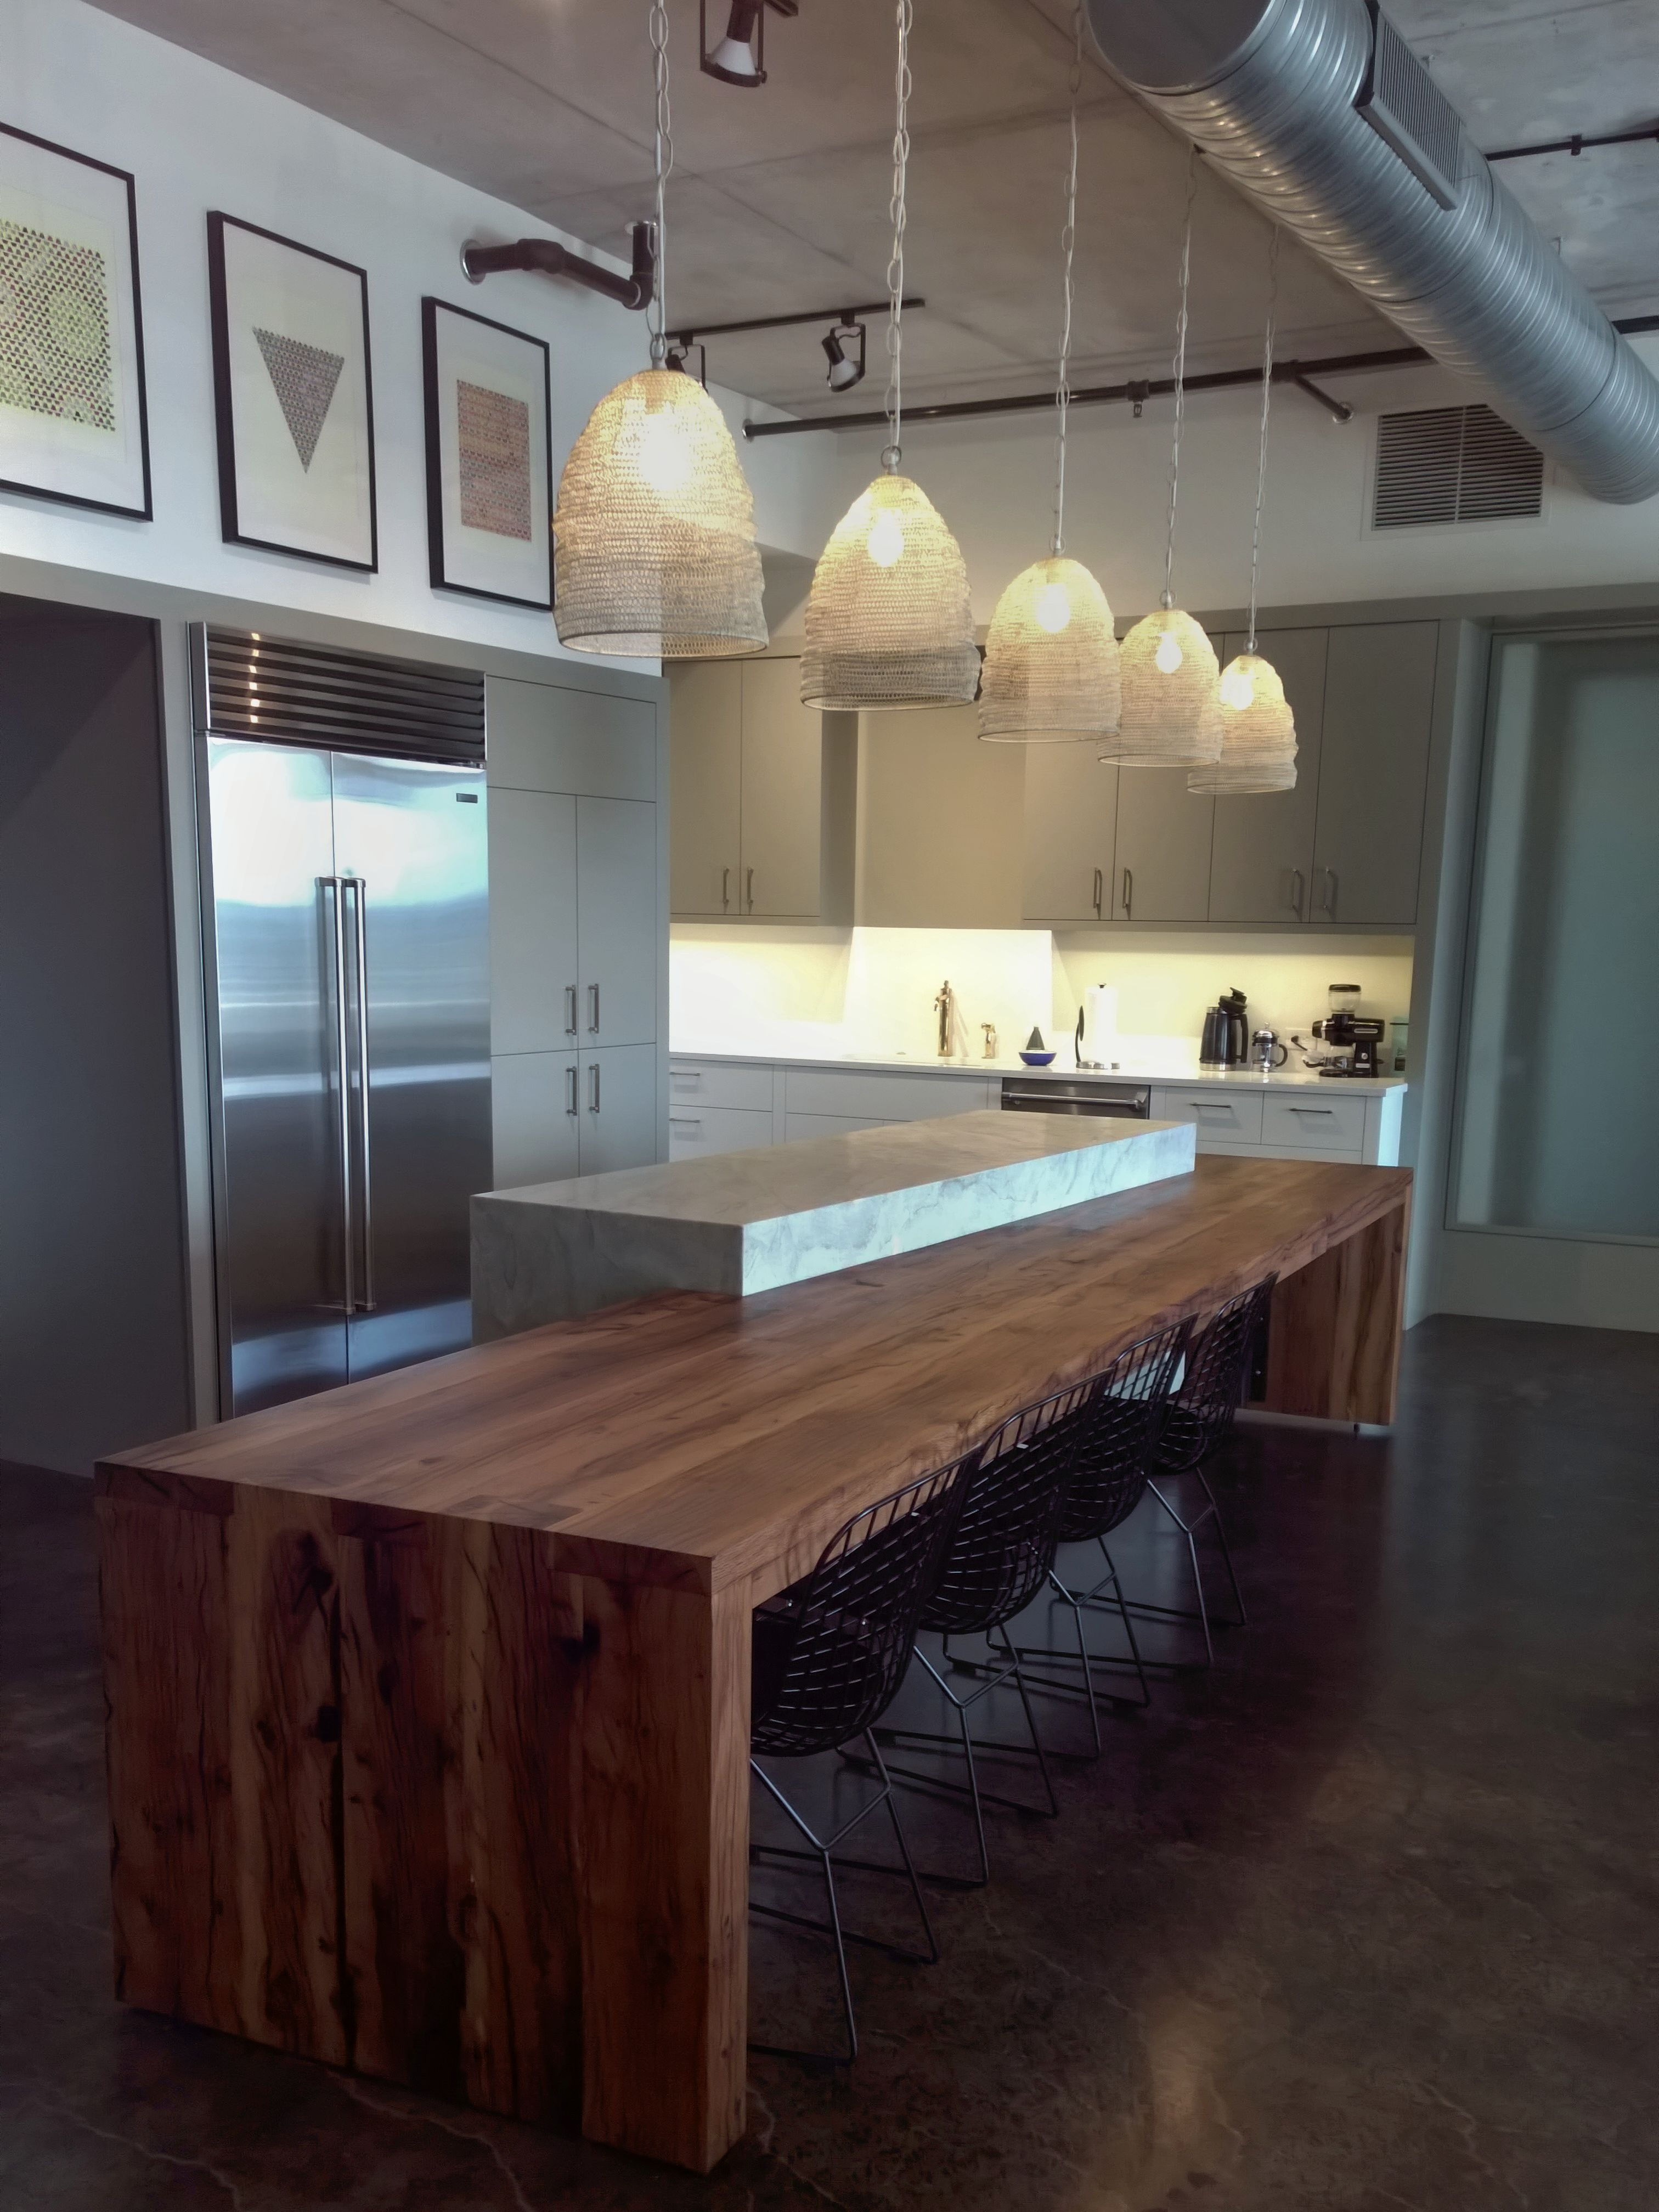 reclaimed white oak wood countertop photo gallery by devos custom finger joint contemporary reclaimed white oak custom wood island with devos puzzle joint along the length